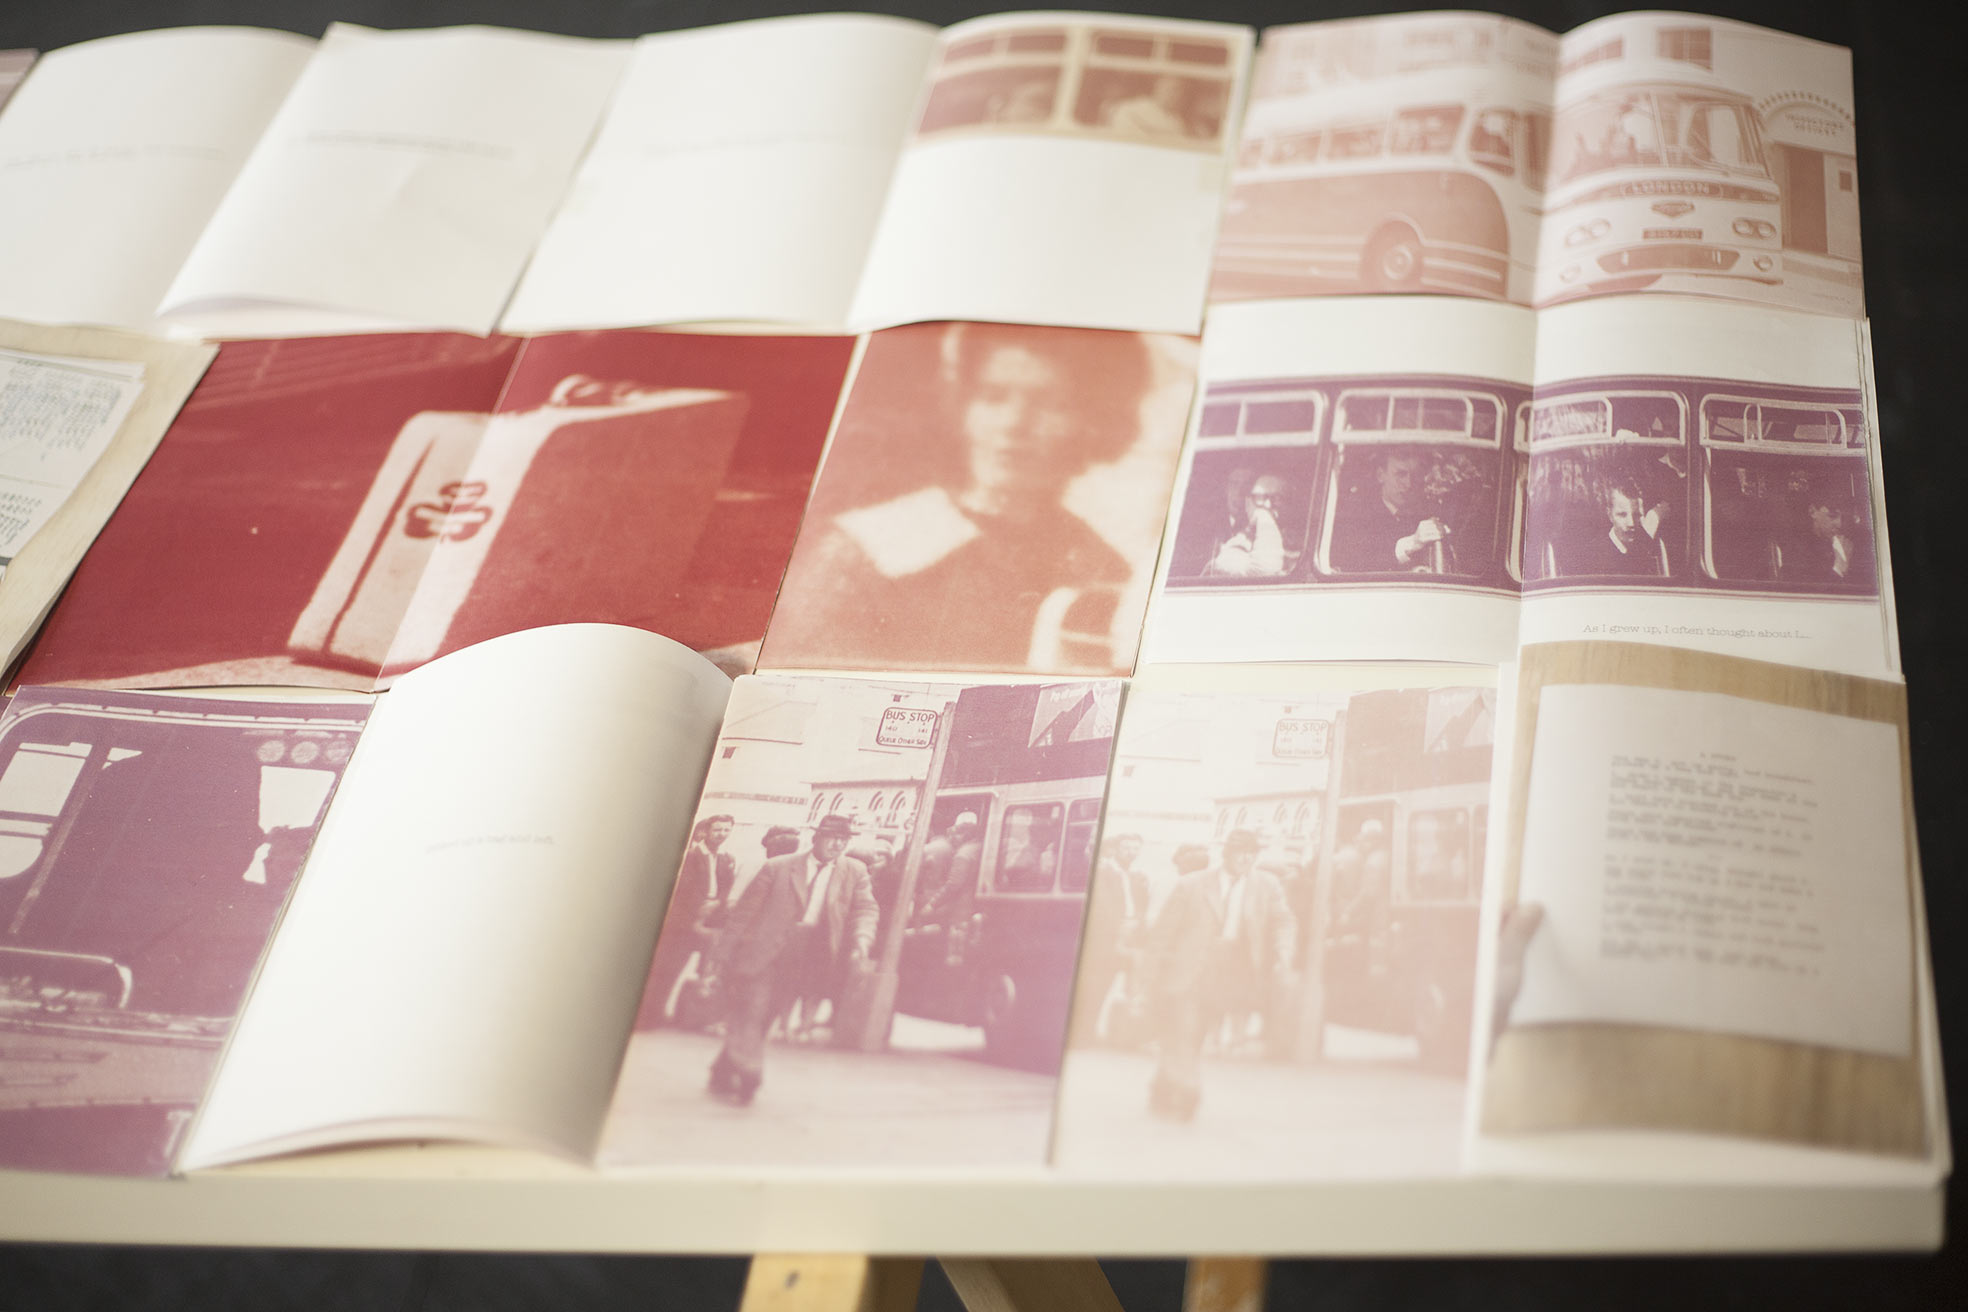 bus-spotting+ a story: photobook and installation